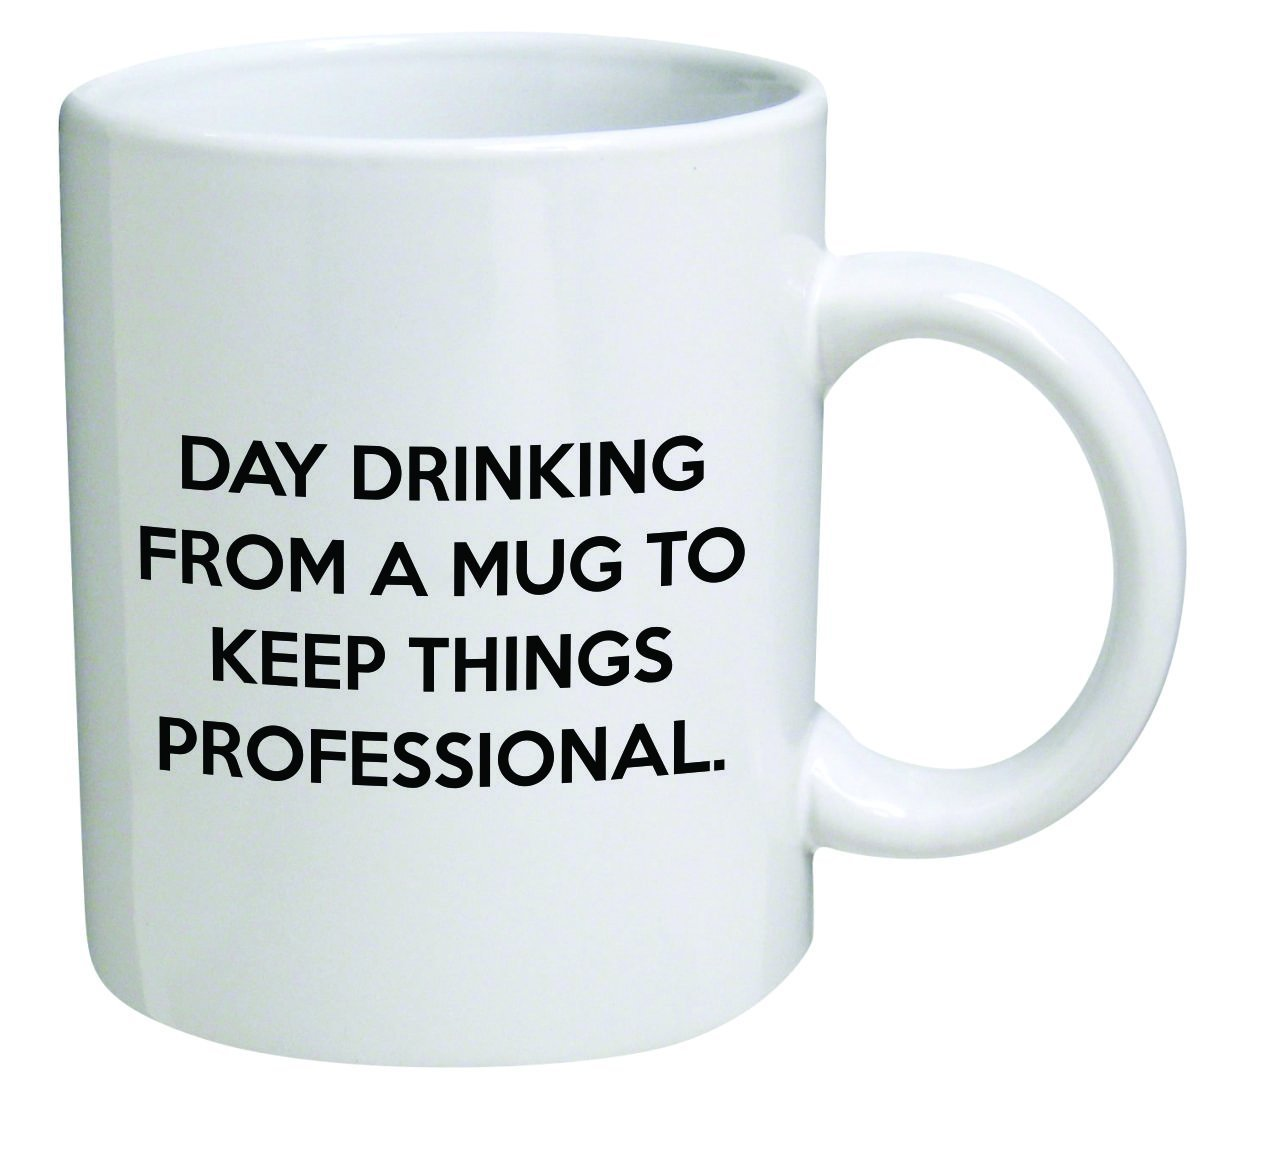 funny mug 11oz day drinking from a mug to keep things professional cool birthday - Cool Things To Get For Christmas